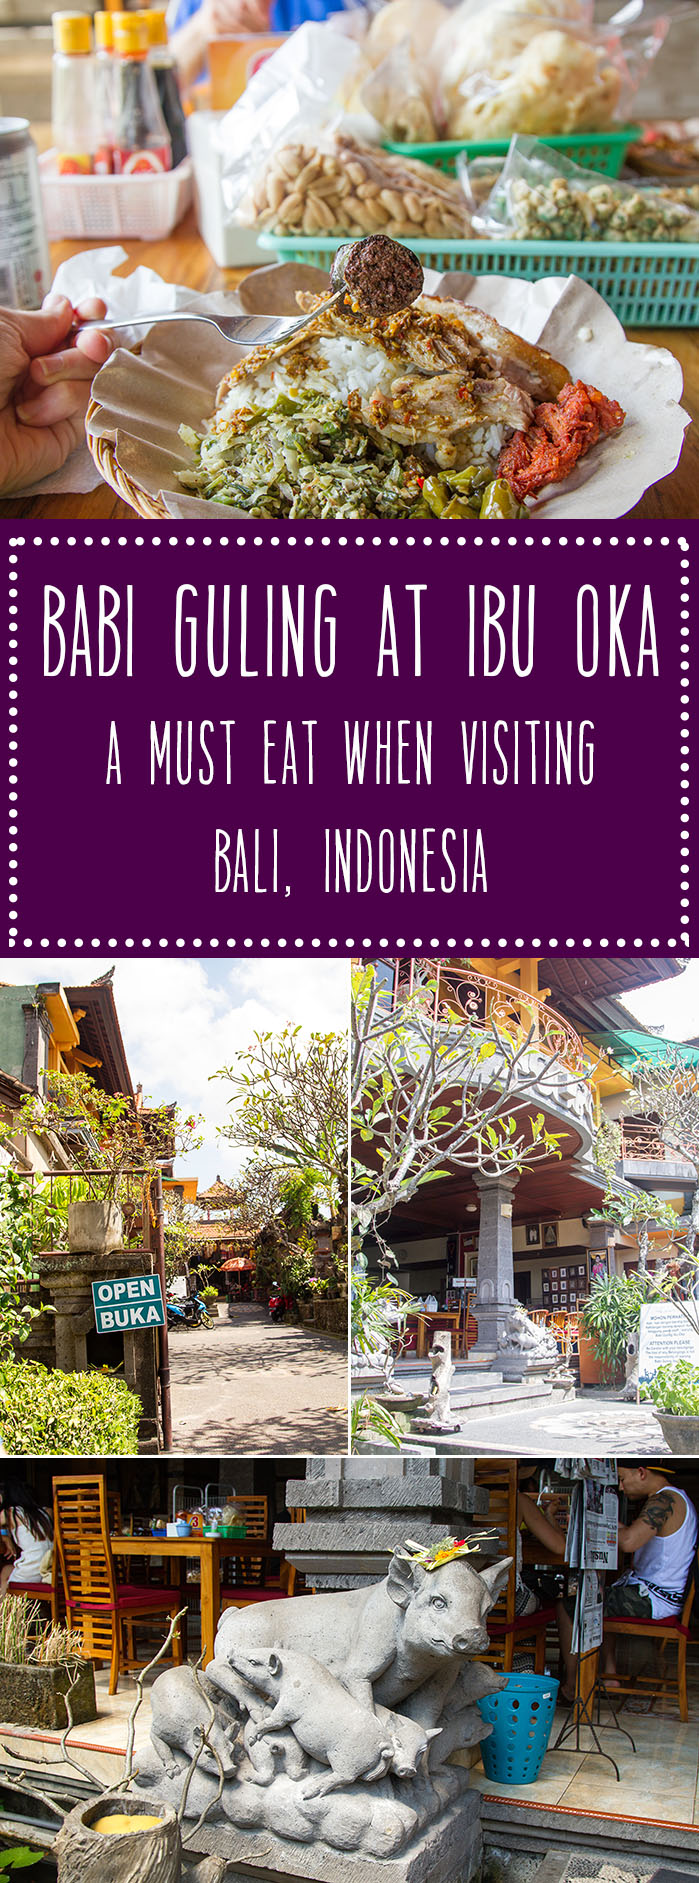 Eating babi guling (Balinese roast suckling pig) at Ibu Oka is a must do when traveling to Bali, Indonesia.  It is the most delicious roasted pork you will ever eat!